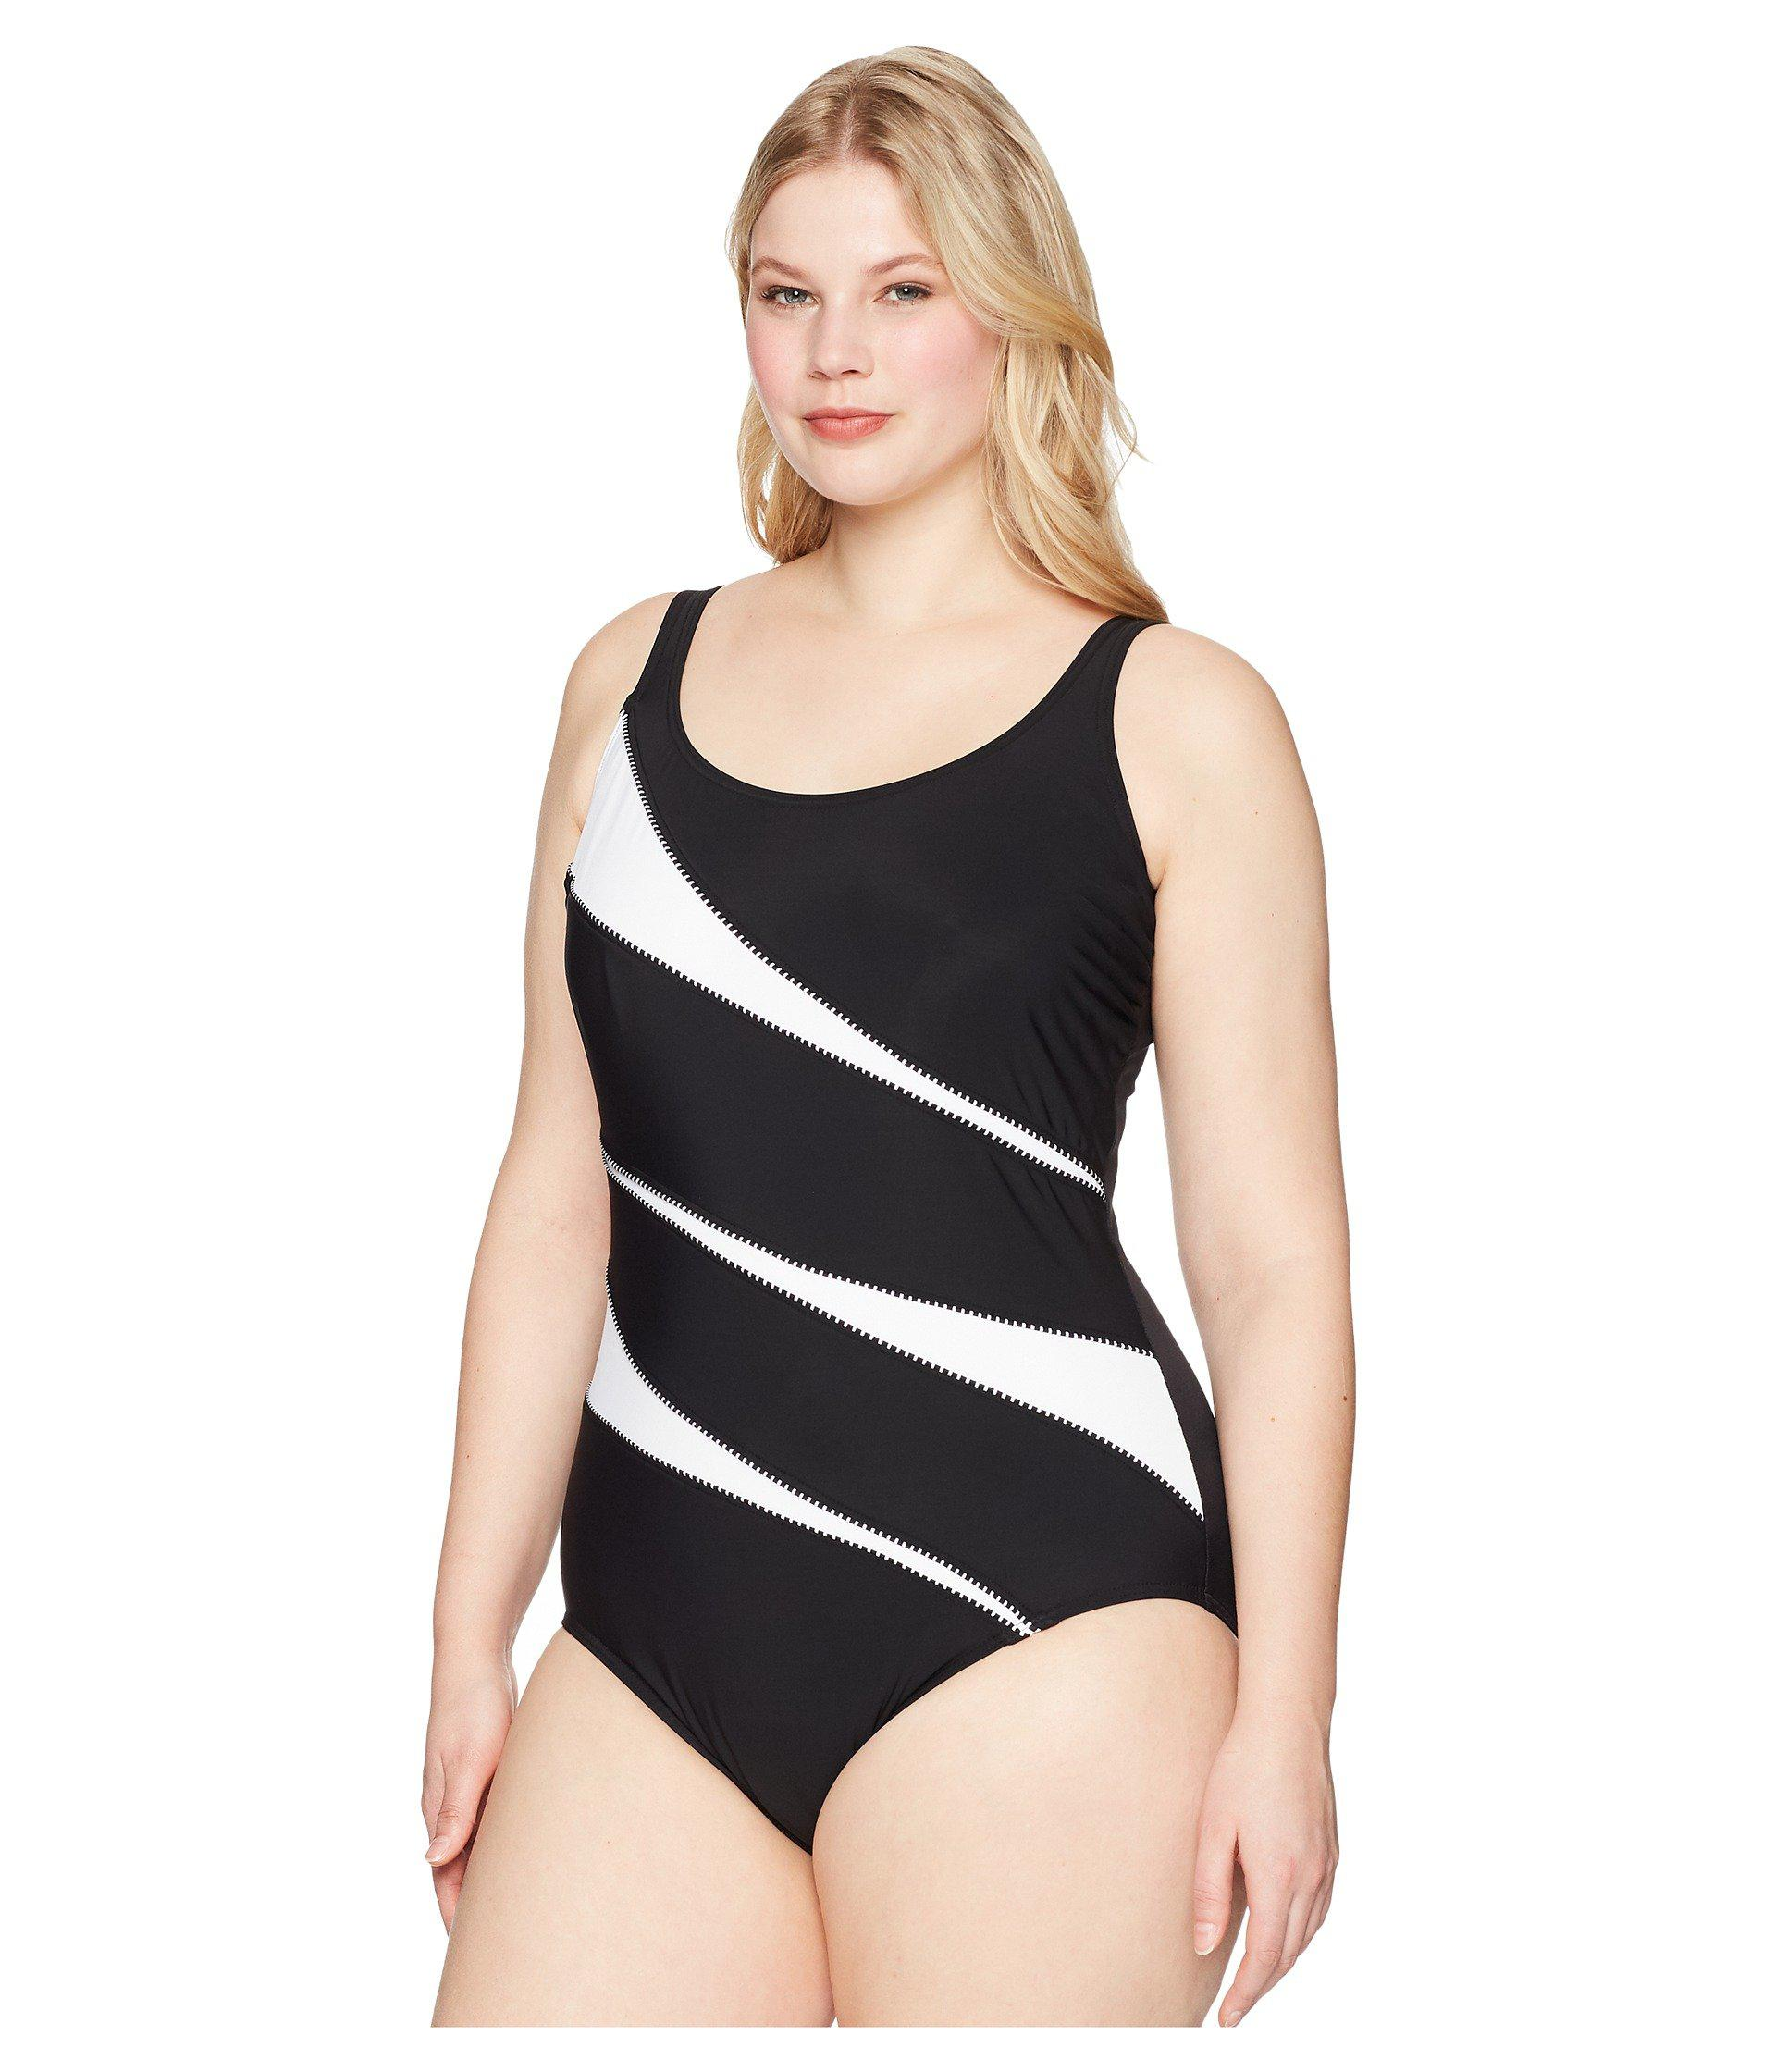 cc2eef1e93 Miraclesuit Plus Size Solids Helix One-piece (black/white) Swimsuits ...